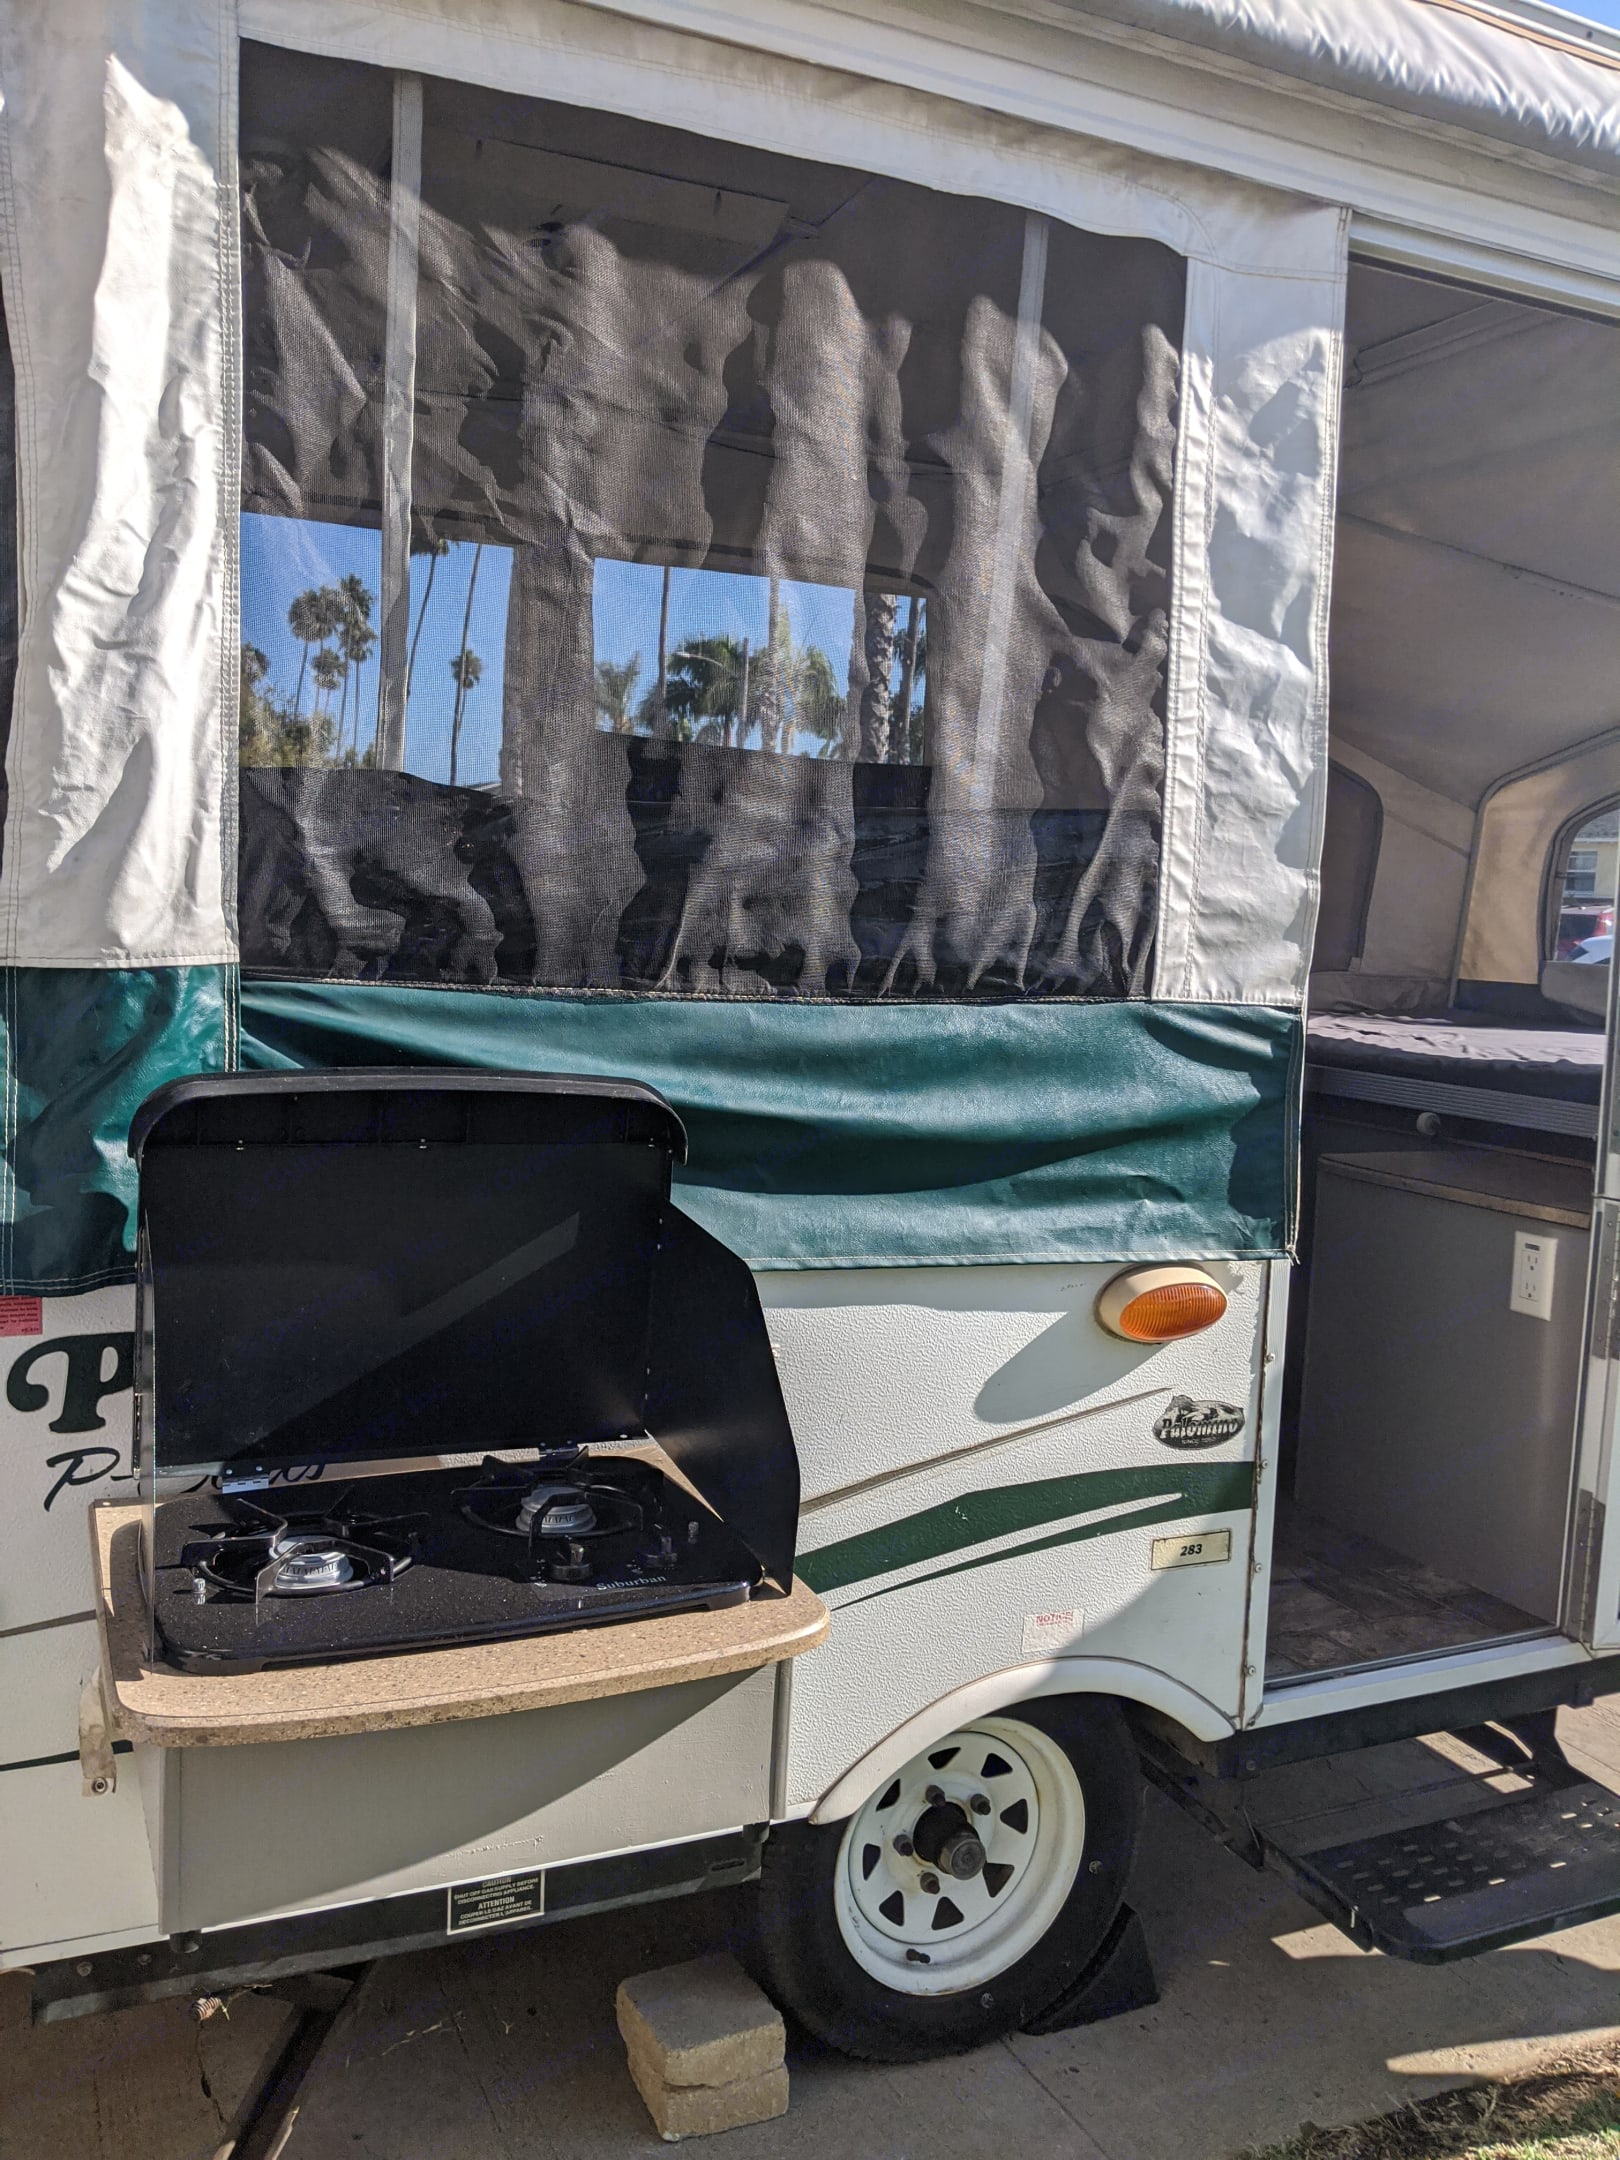 Outdoor cooking made safe and easy!. Palomino Pony 2011